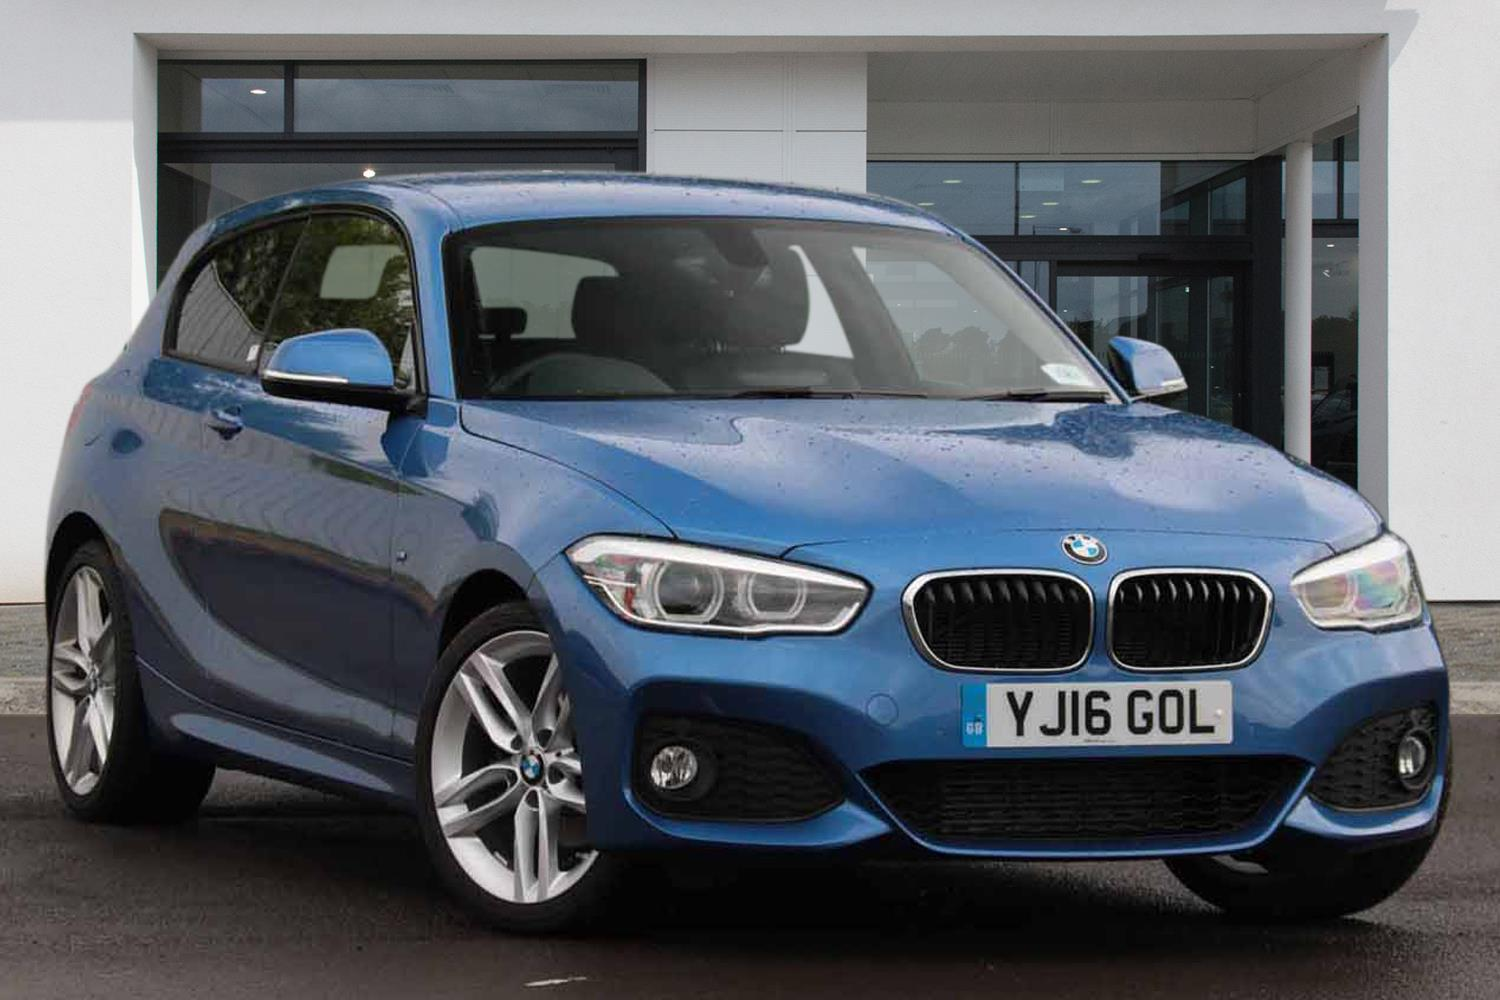 BMW 1 Series 3-door Sports Hatch YJ16GOL - Image 5